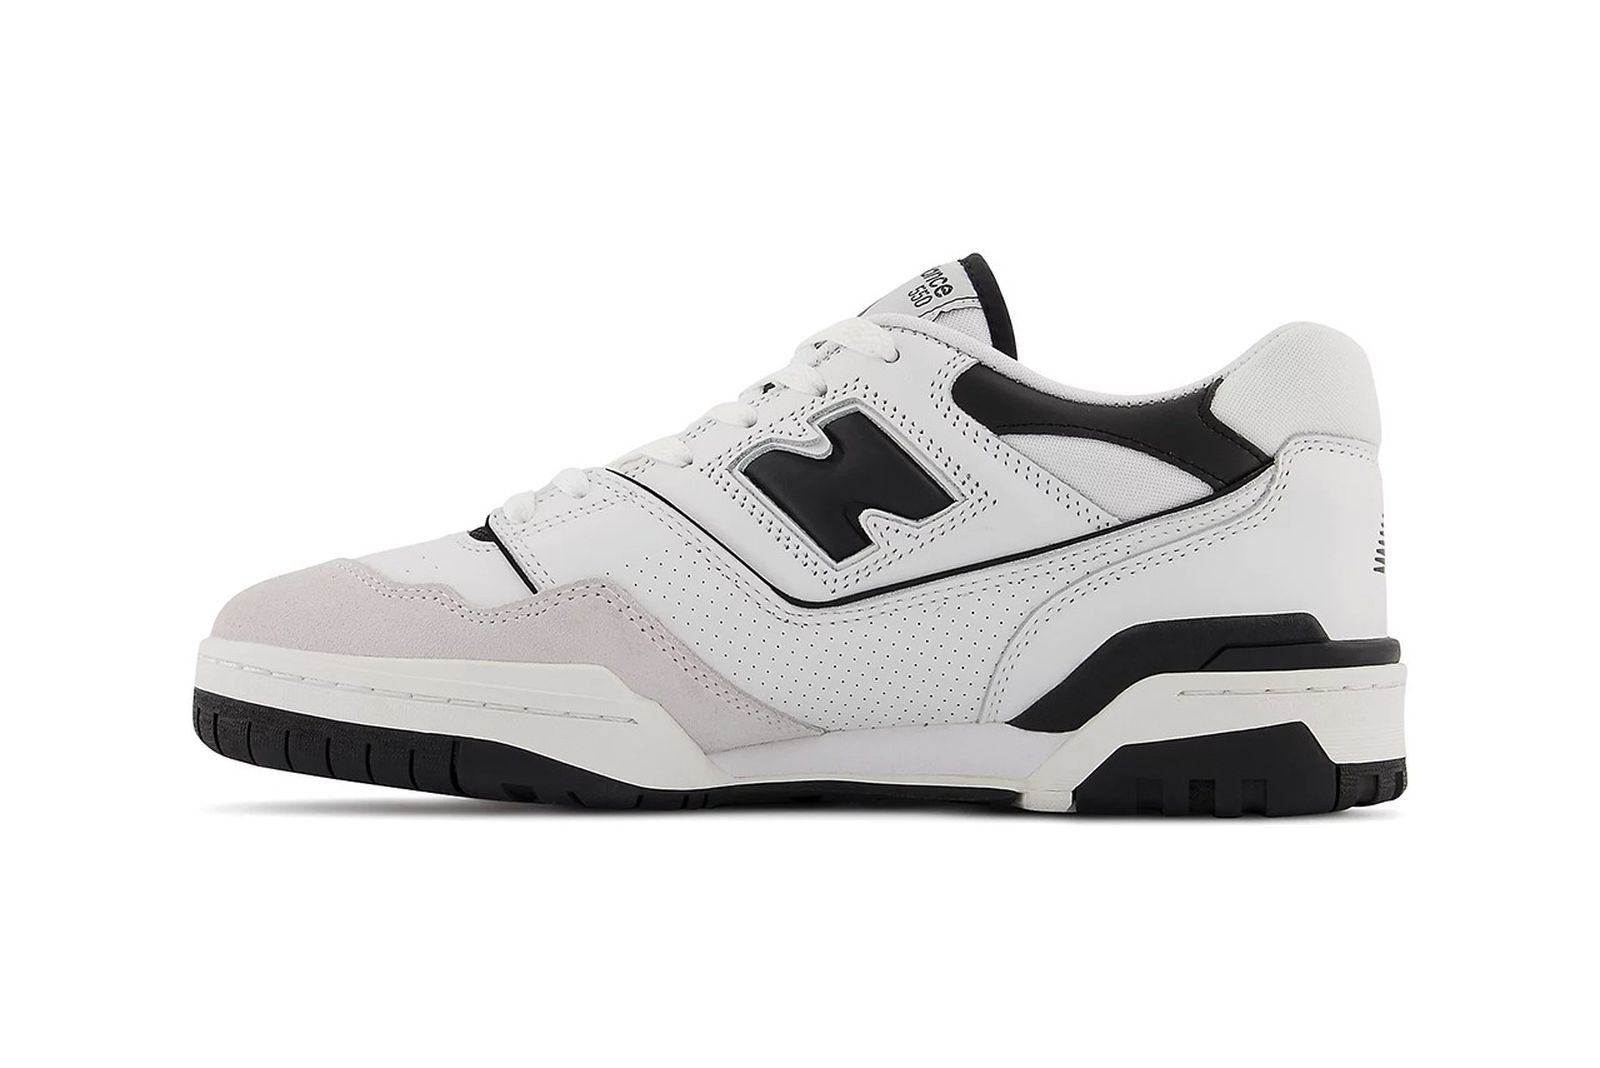 new-balance-550-spring-colorways-release-date-price-9